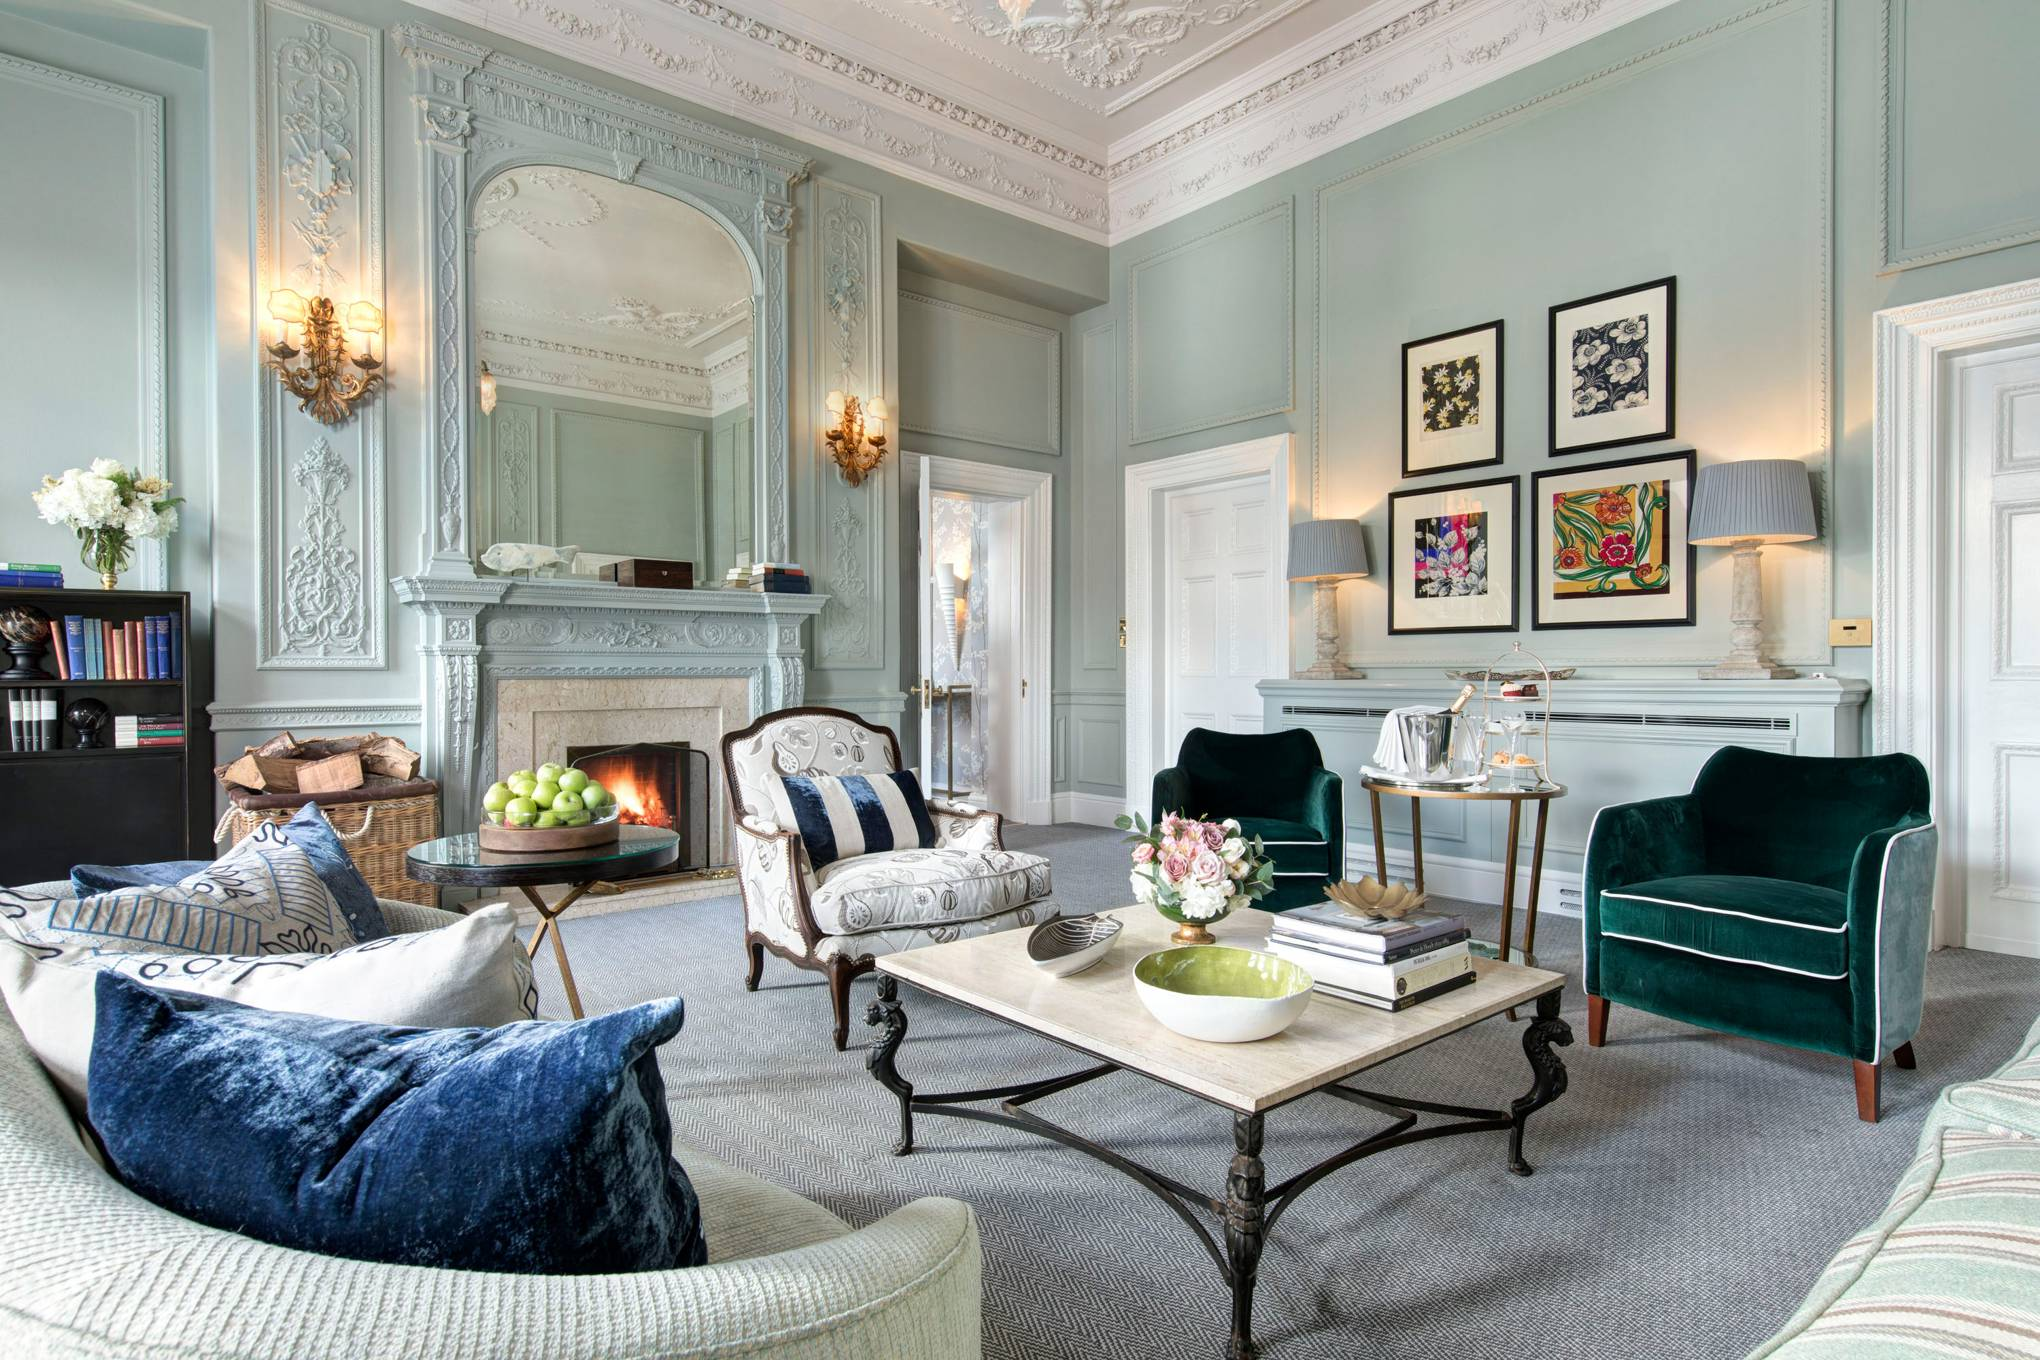 Best Edinburgh hotels and the best places to stay